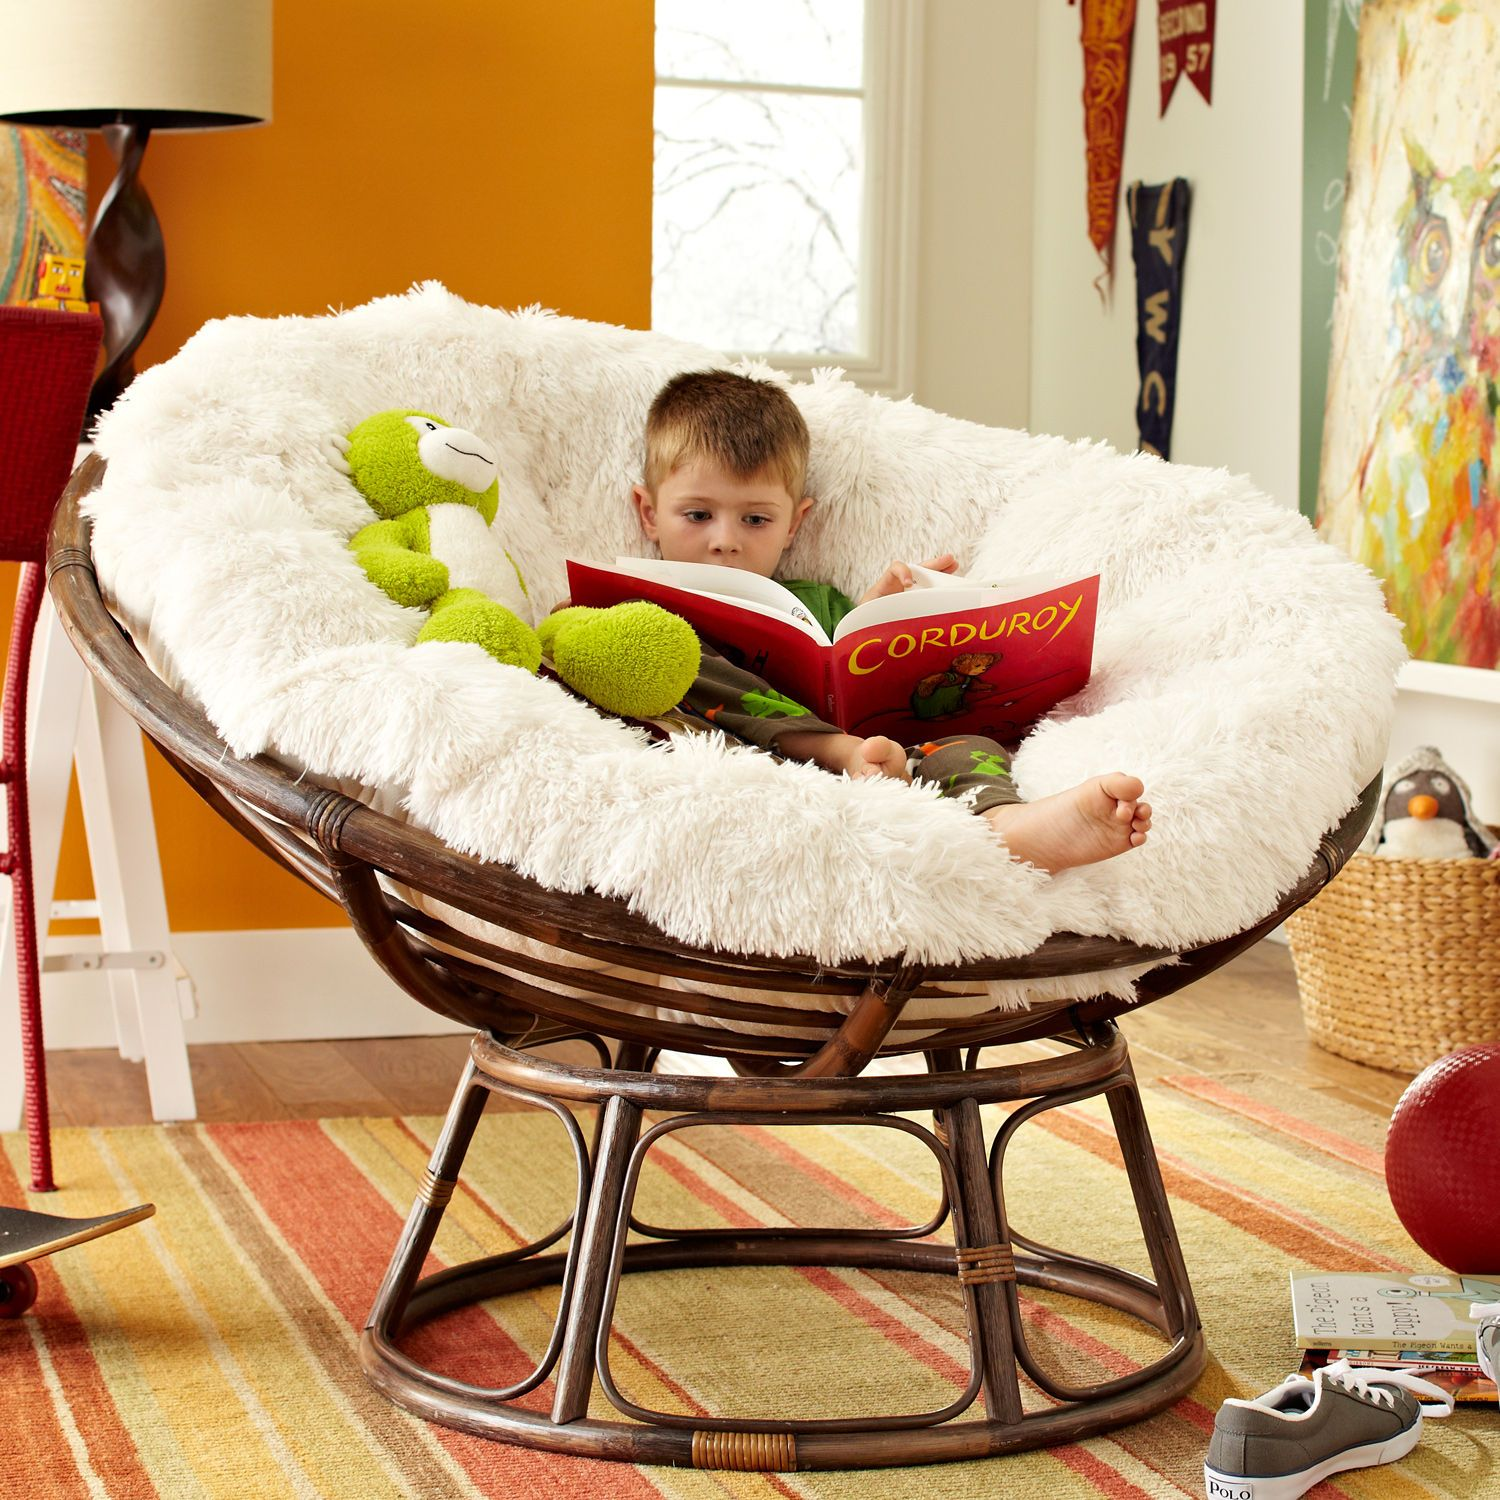 papasan chair pier one papasan chair with fuzzy cover from Pier 1 Imports #PapasanChair  papasan chair pier one